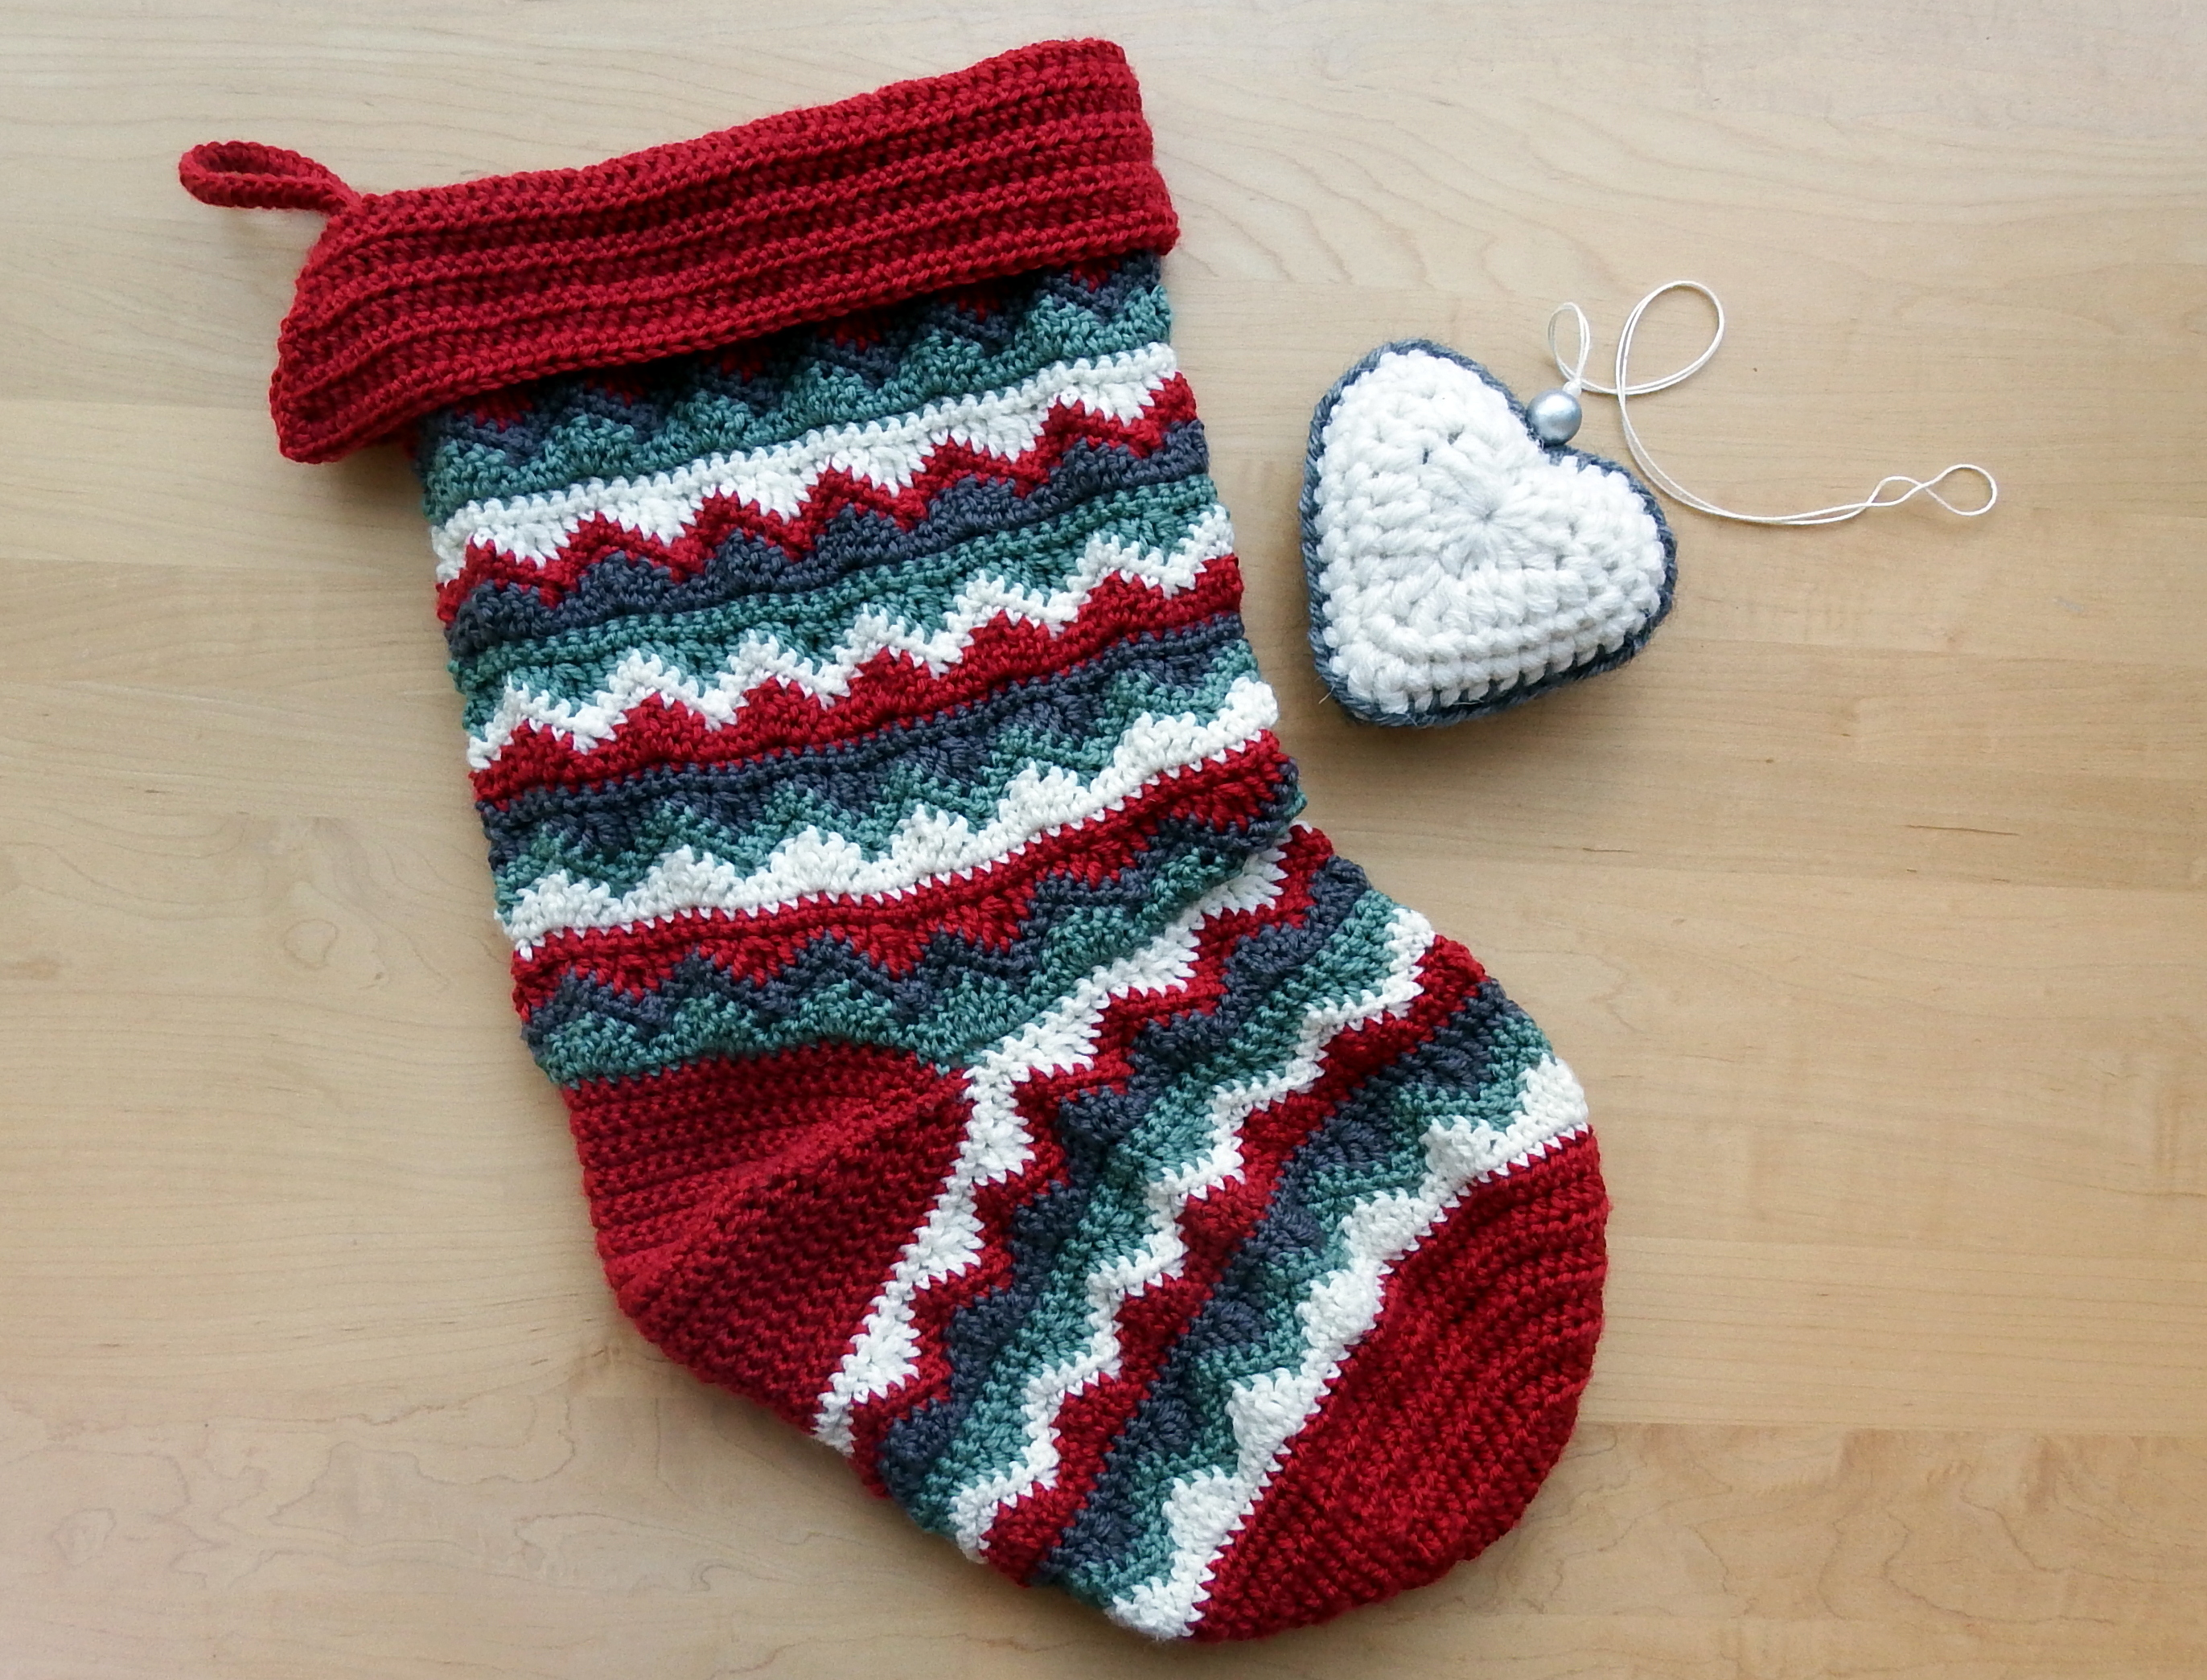 AllFreeCrochet is dedicated to the best free crochet patterns, tutorials, tips and Fun crochet patterns · Free crochet ebooks · Contests and giveaways · Free newslettersTypes: Baby Blankets, Socks, Throws, Beanies, Booties.